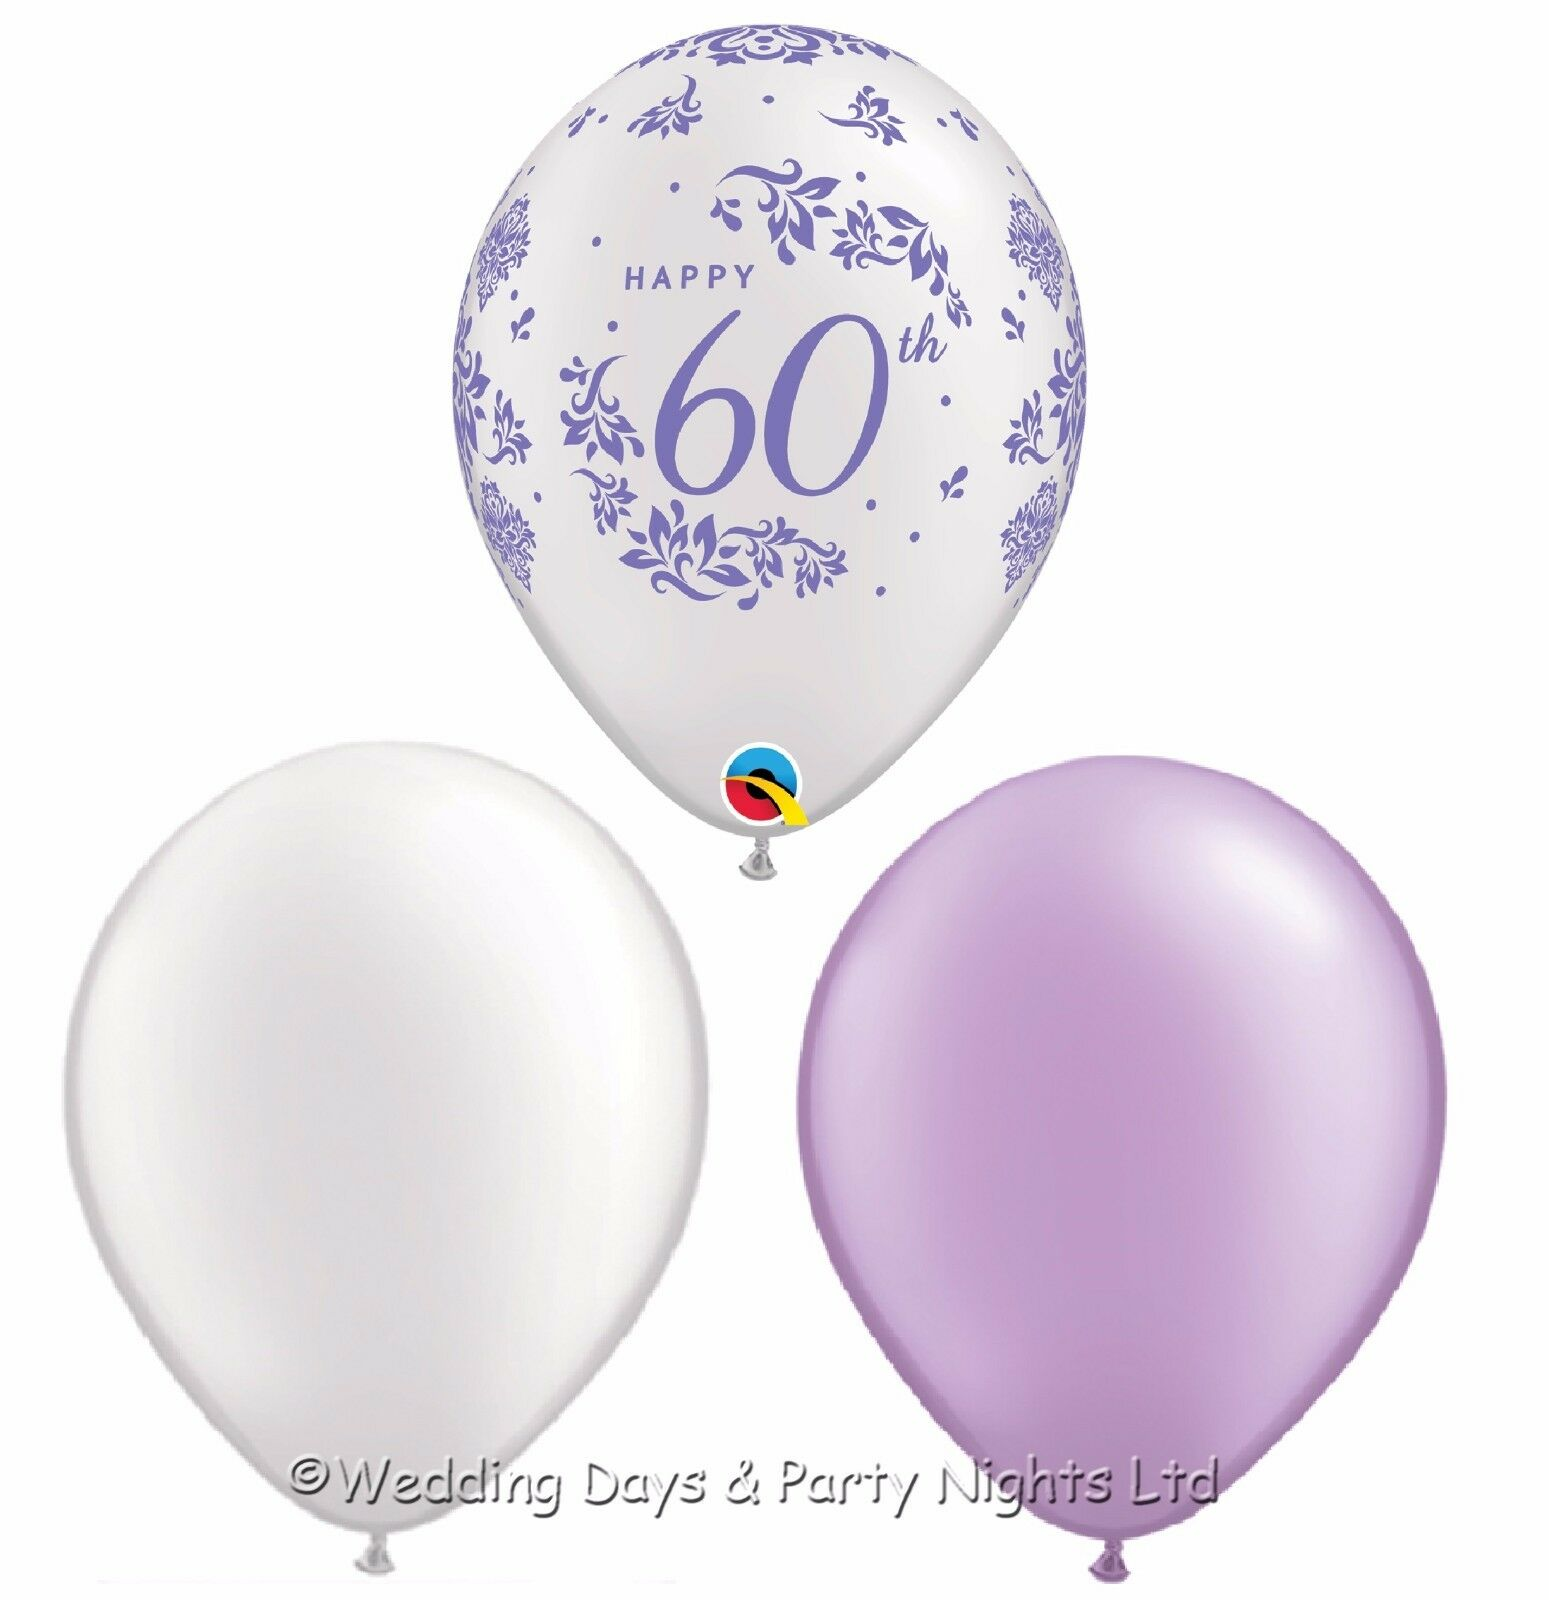 30 Hy 60th Balloons Diamond Wedding Anniversary Or Birthday Party Decorations 1 Of 1free Shipping See More